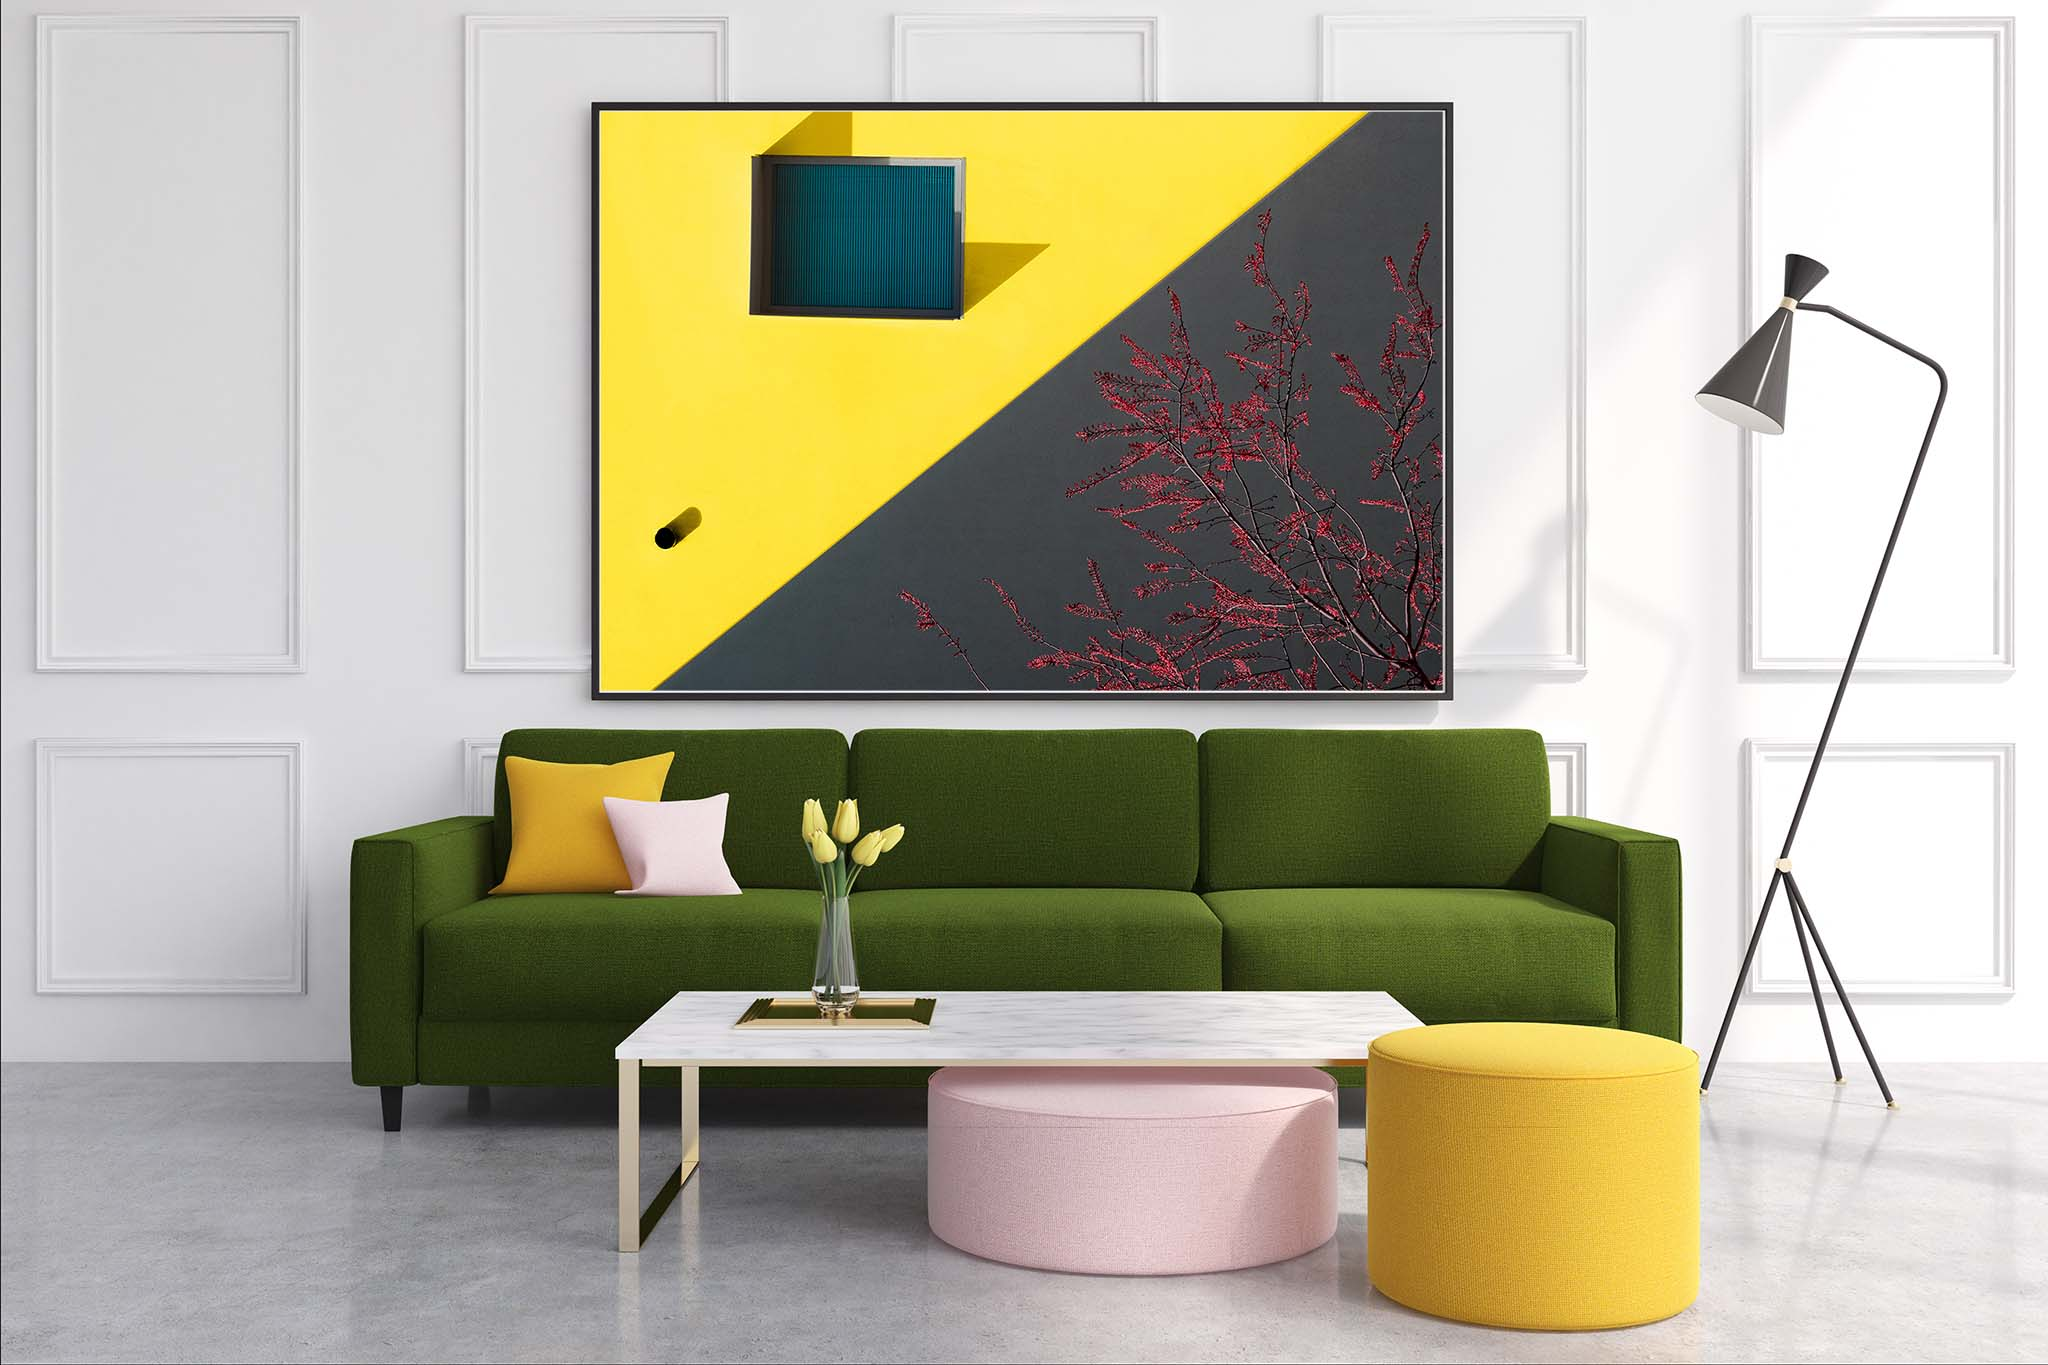 White living room interior with a dark green sofa, colored cushions lying on it and a horizontal fine art print hanging above it.